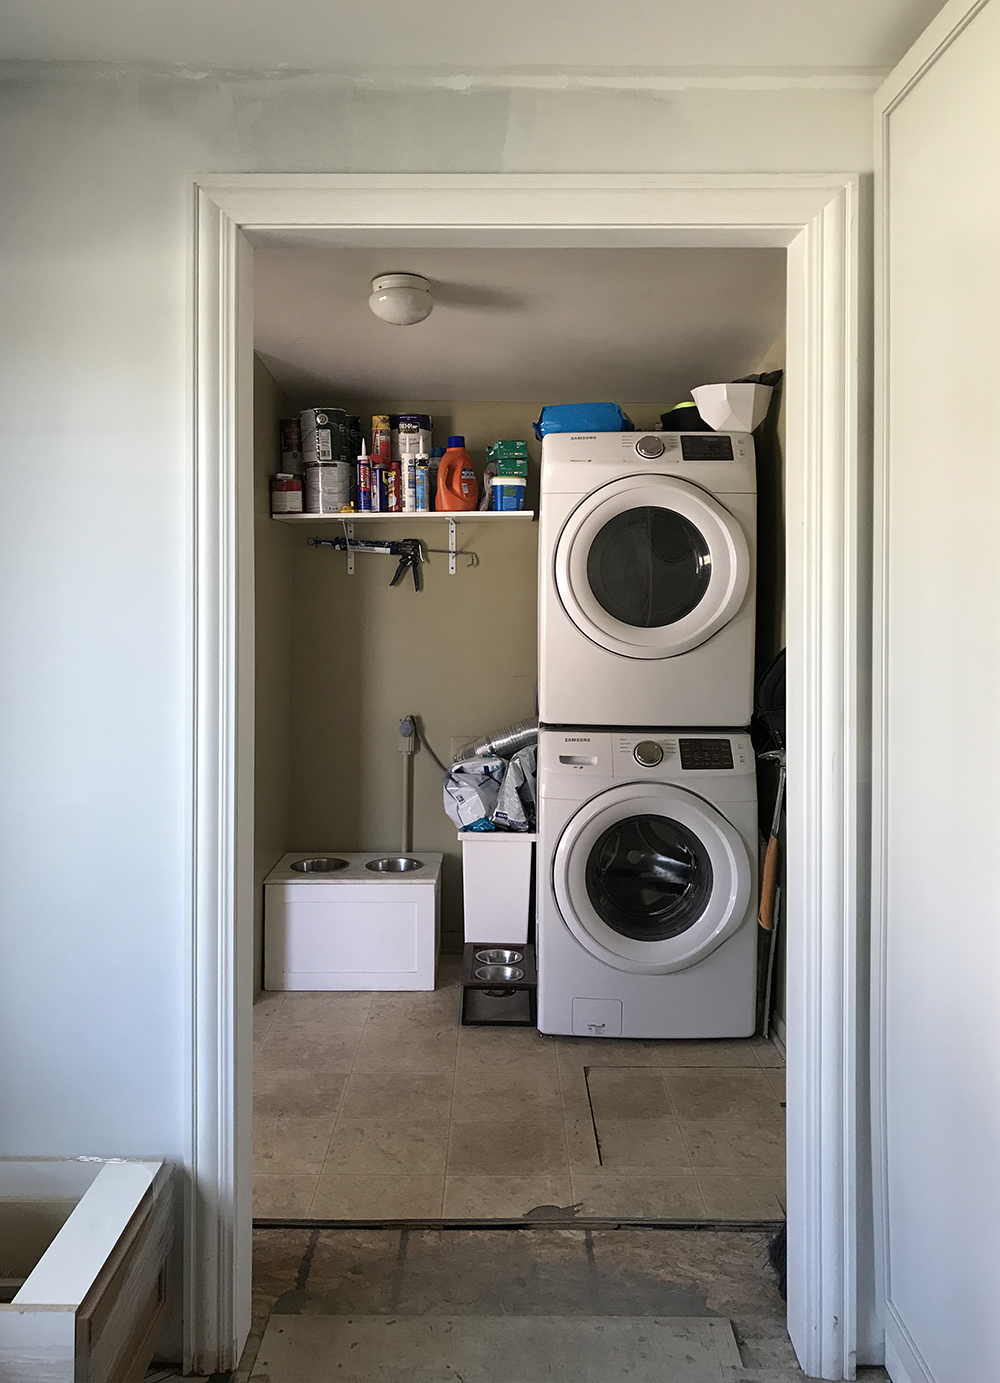 Laundry Room : One Room Challenge - Week 1 - roomfortuesday.com